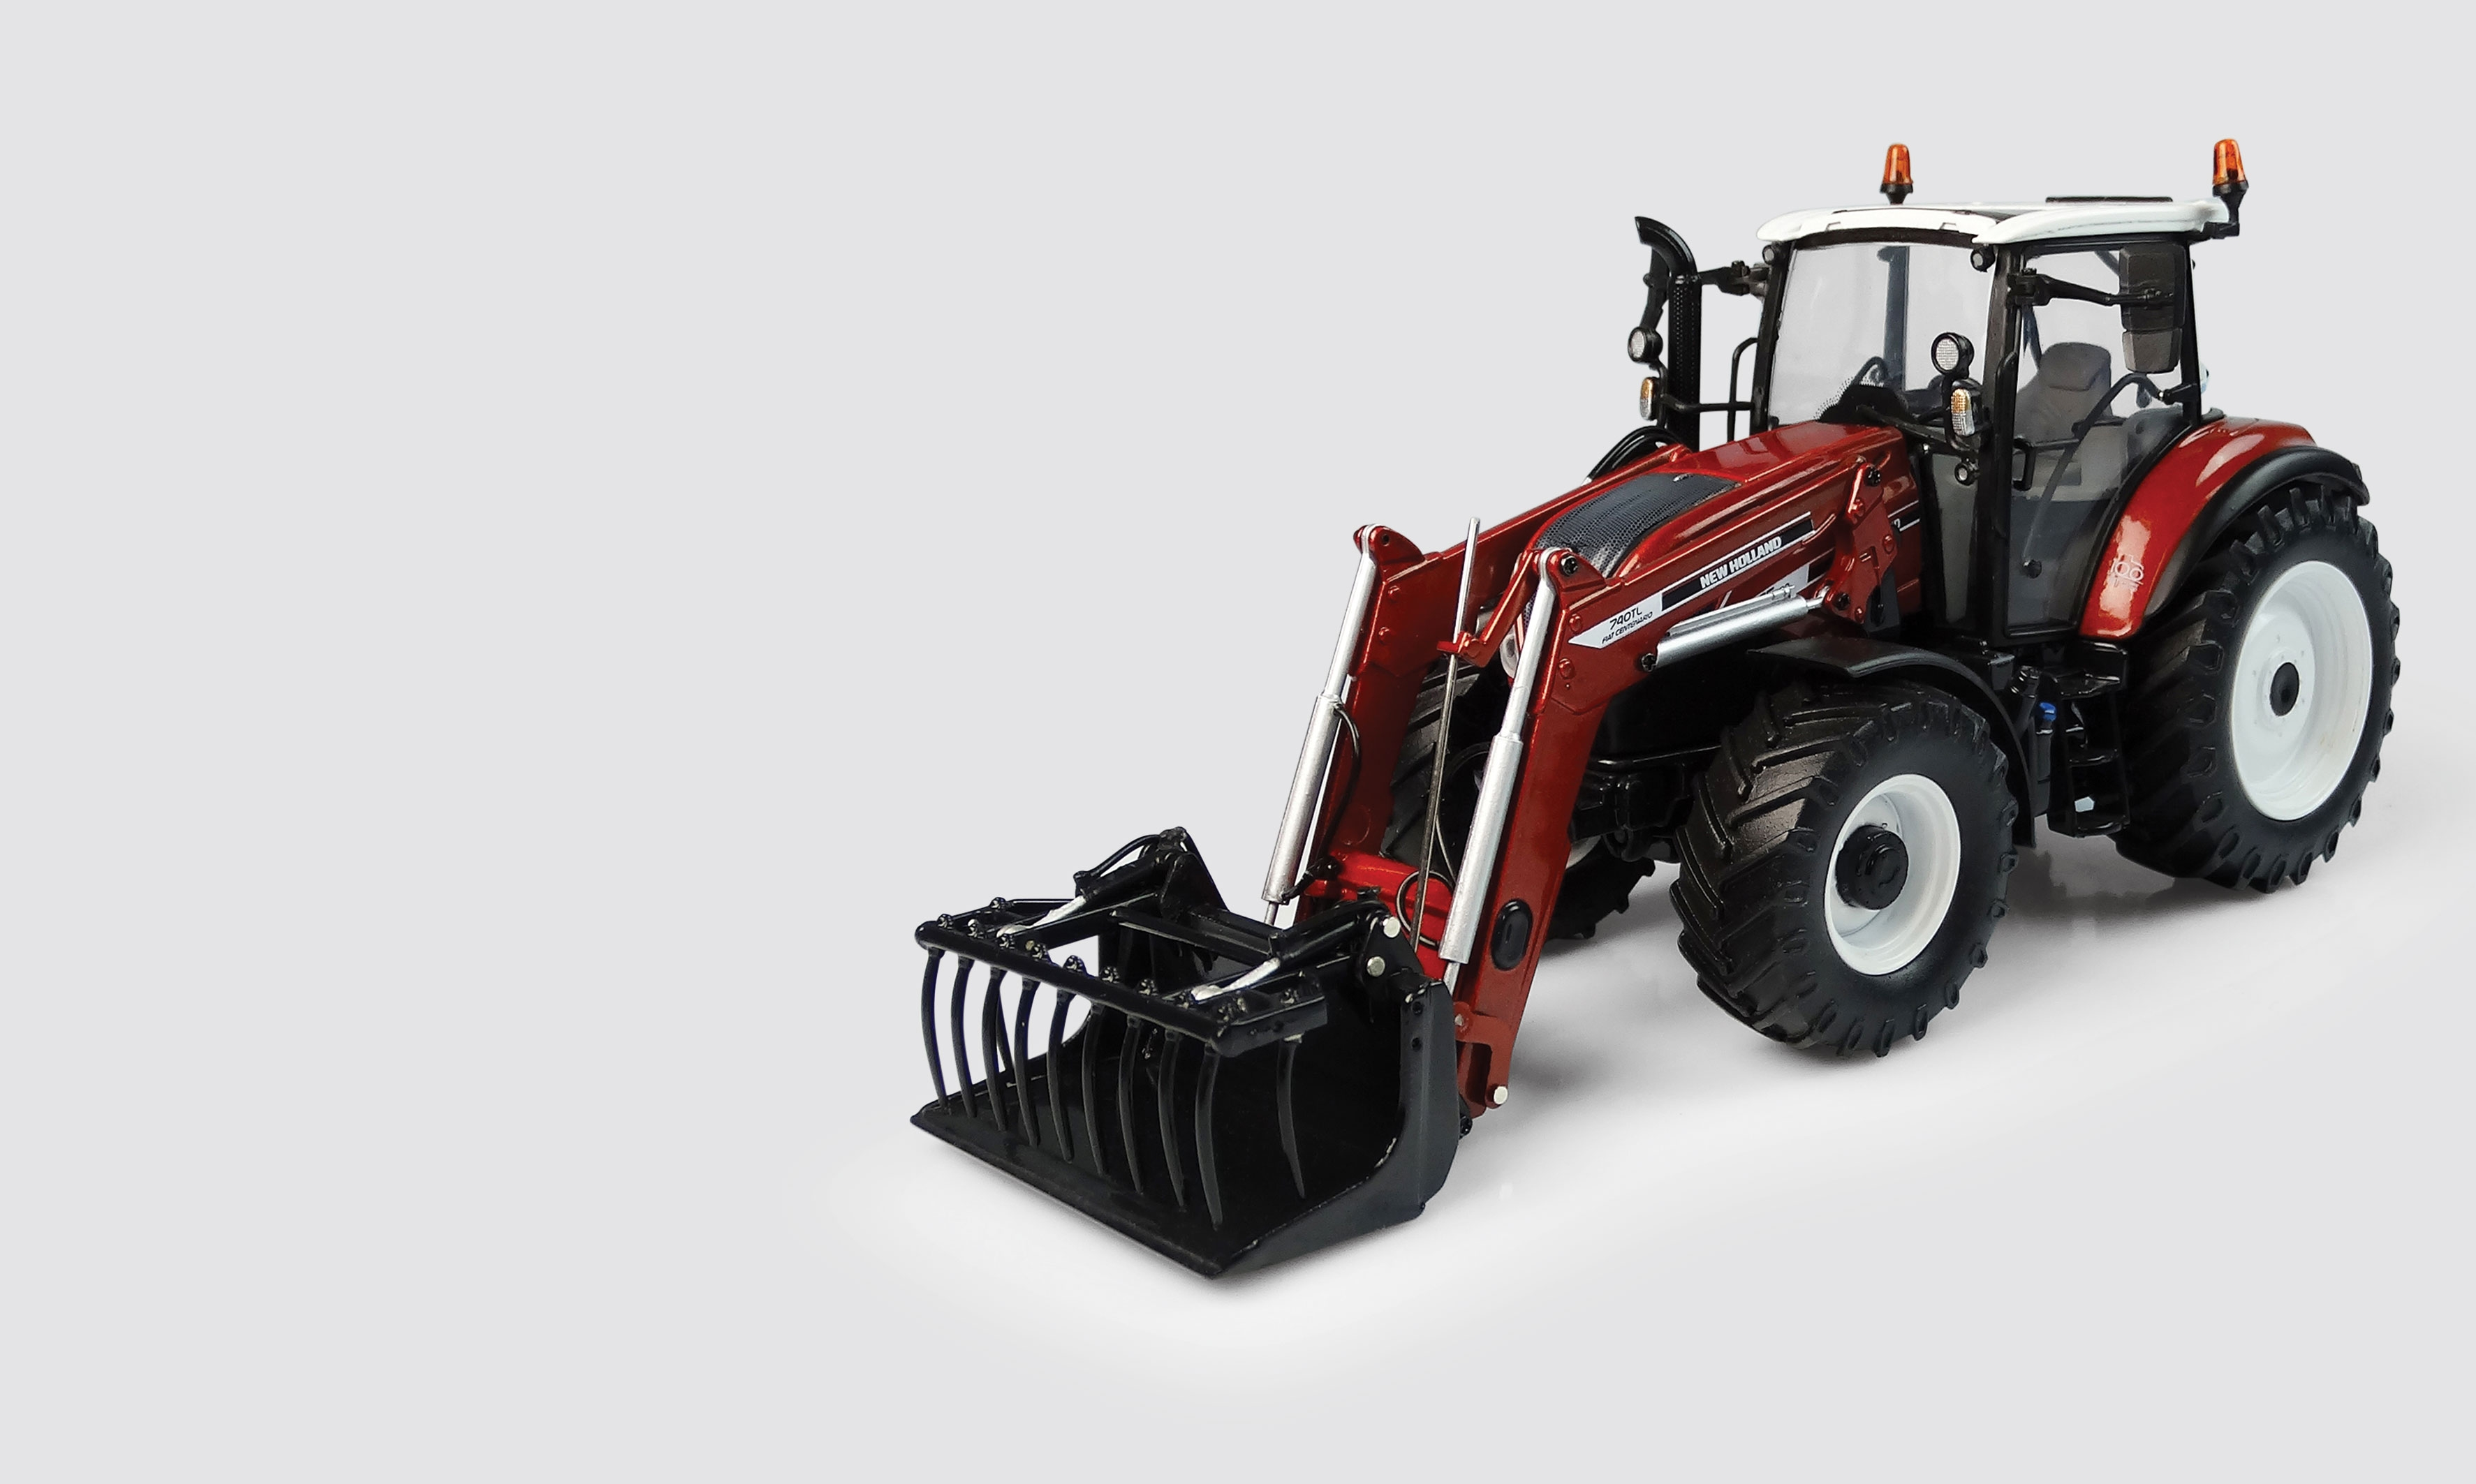 """New Holland T5.120 """"Centenario"""" with 740TL loader in Terracotta color"""